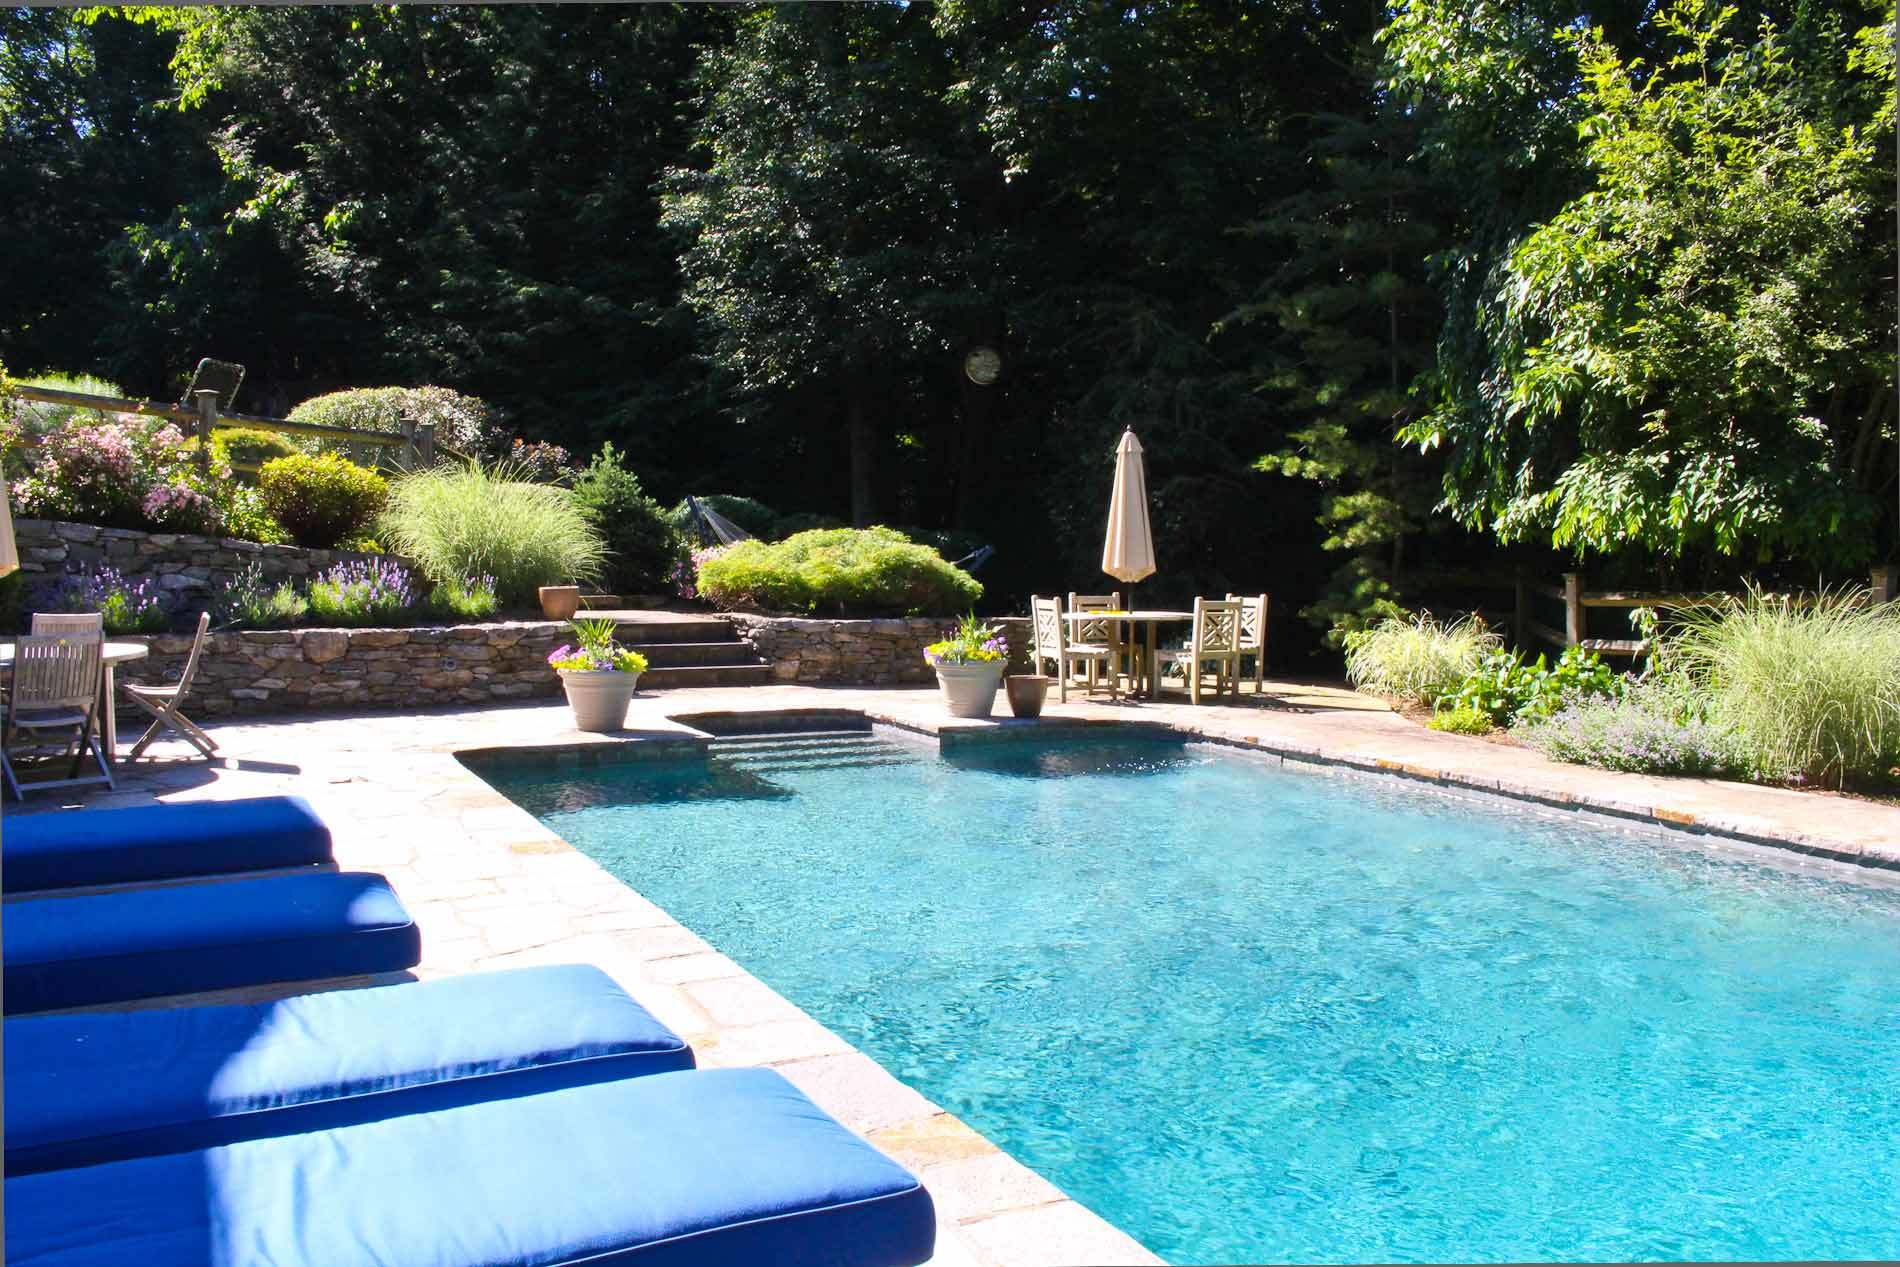 Homes With Swimming Pool For Sale In Fairfield Ct Find